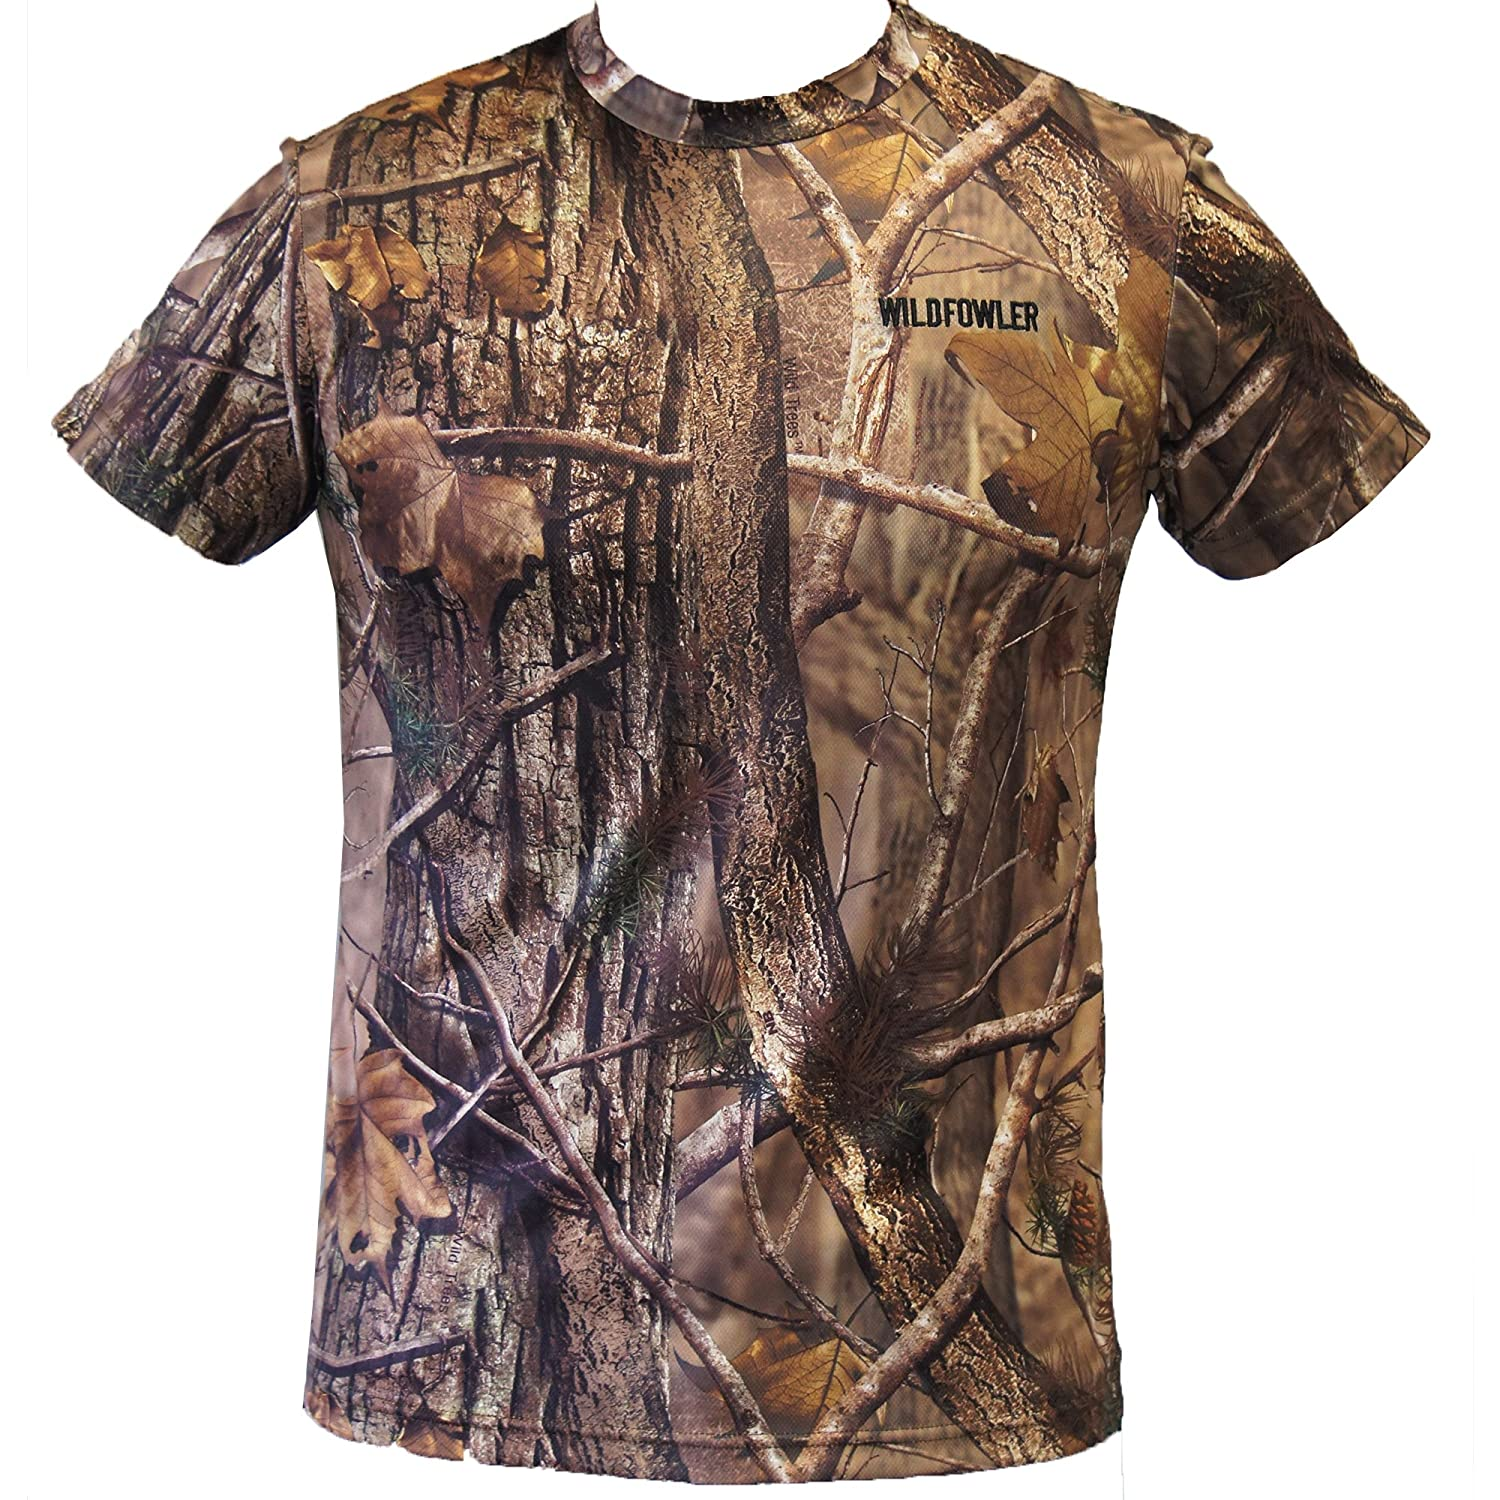 Wildfowler Short Sleeve Quick Dry T-Shirt